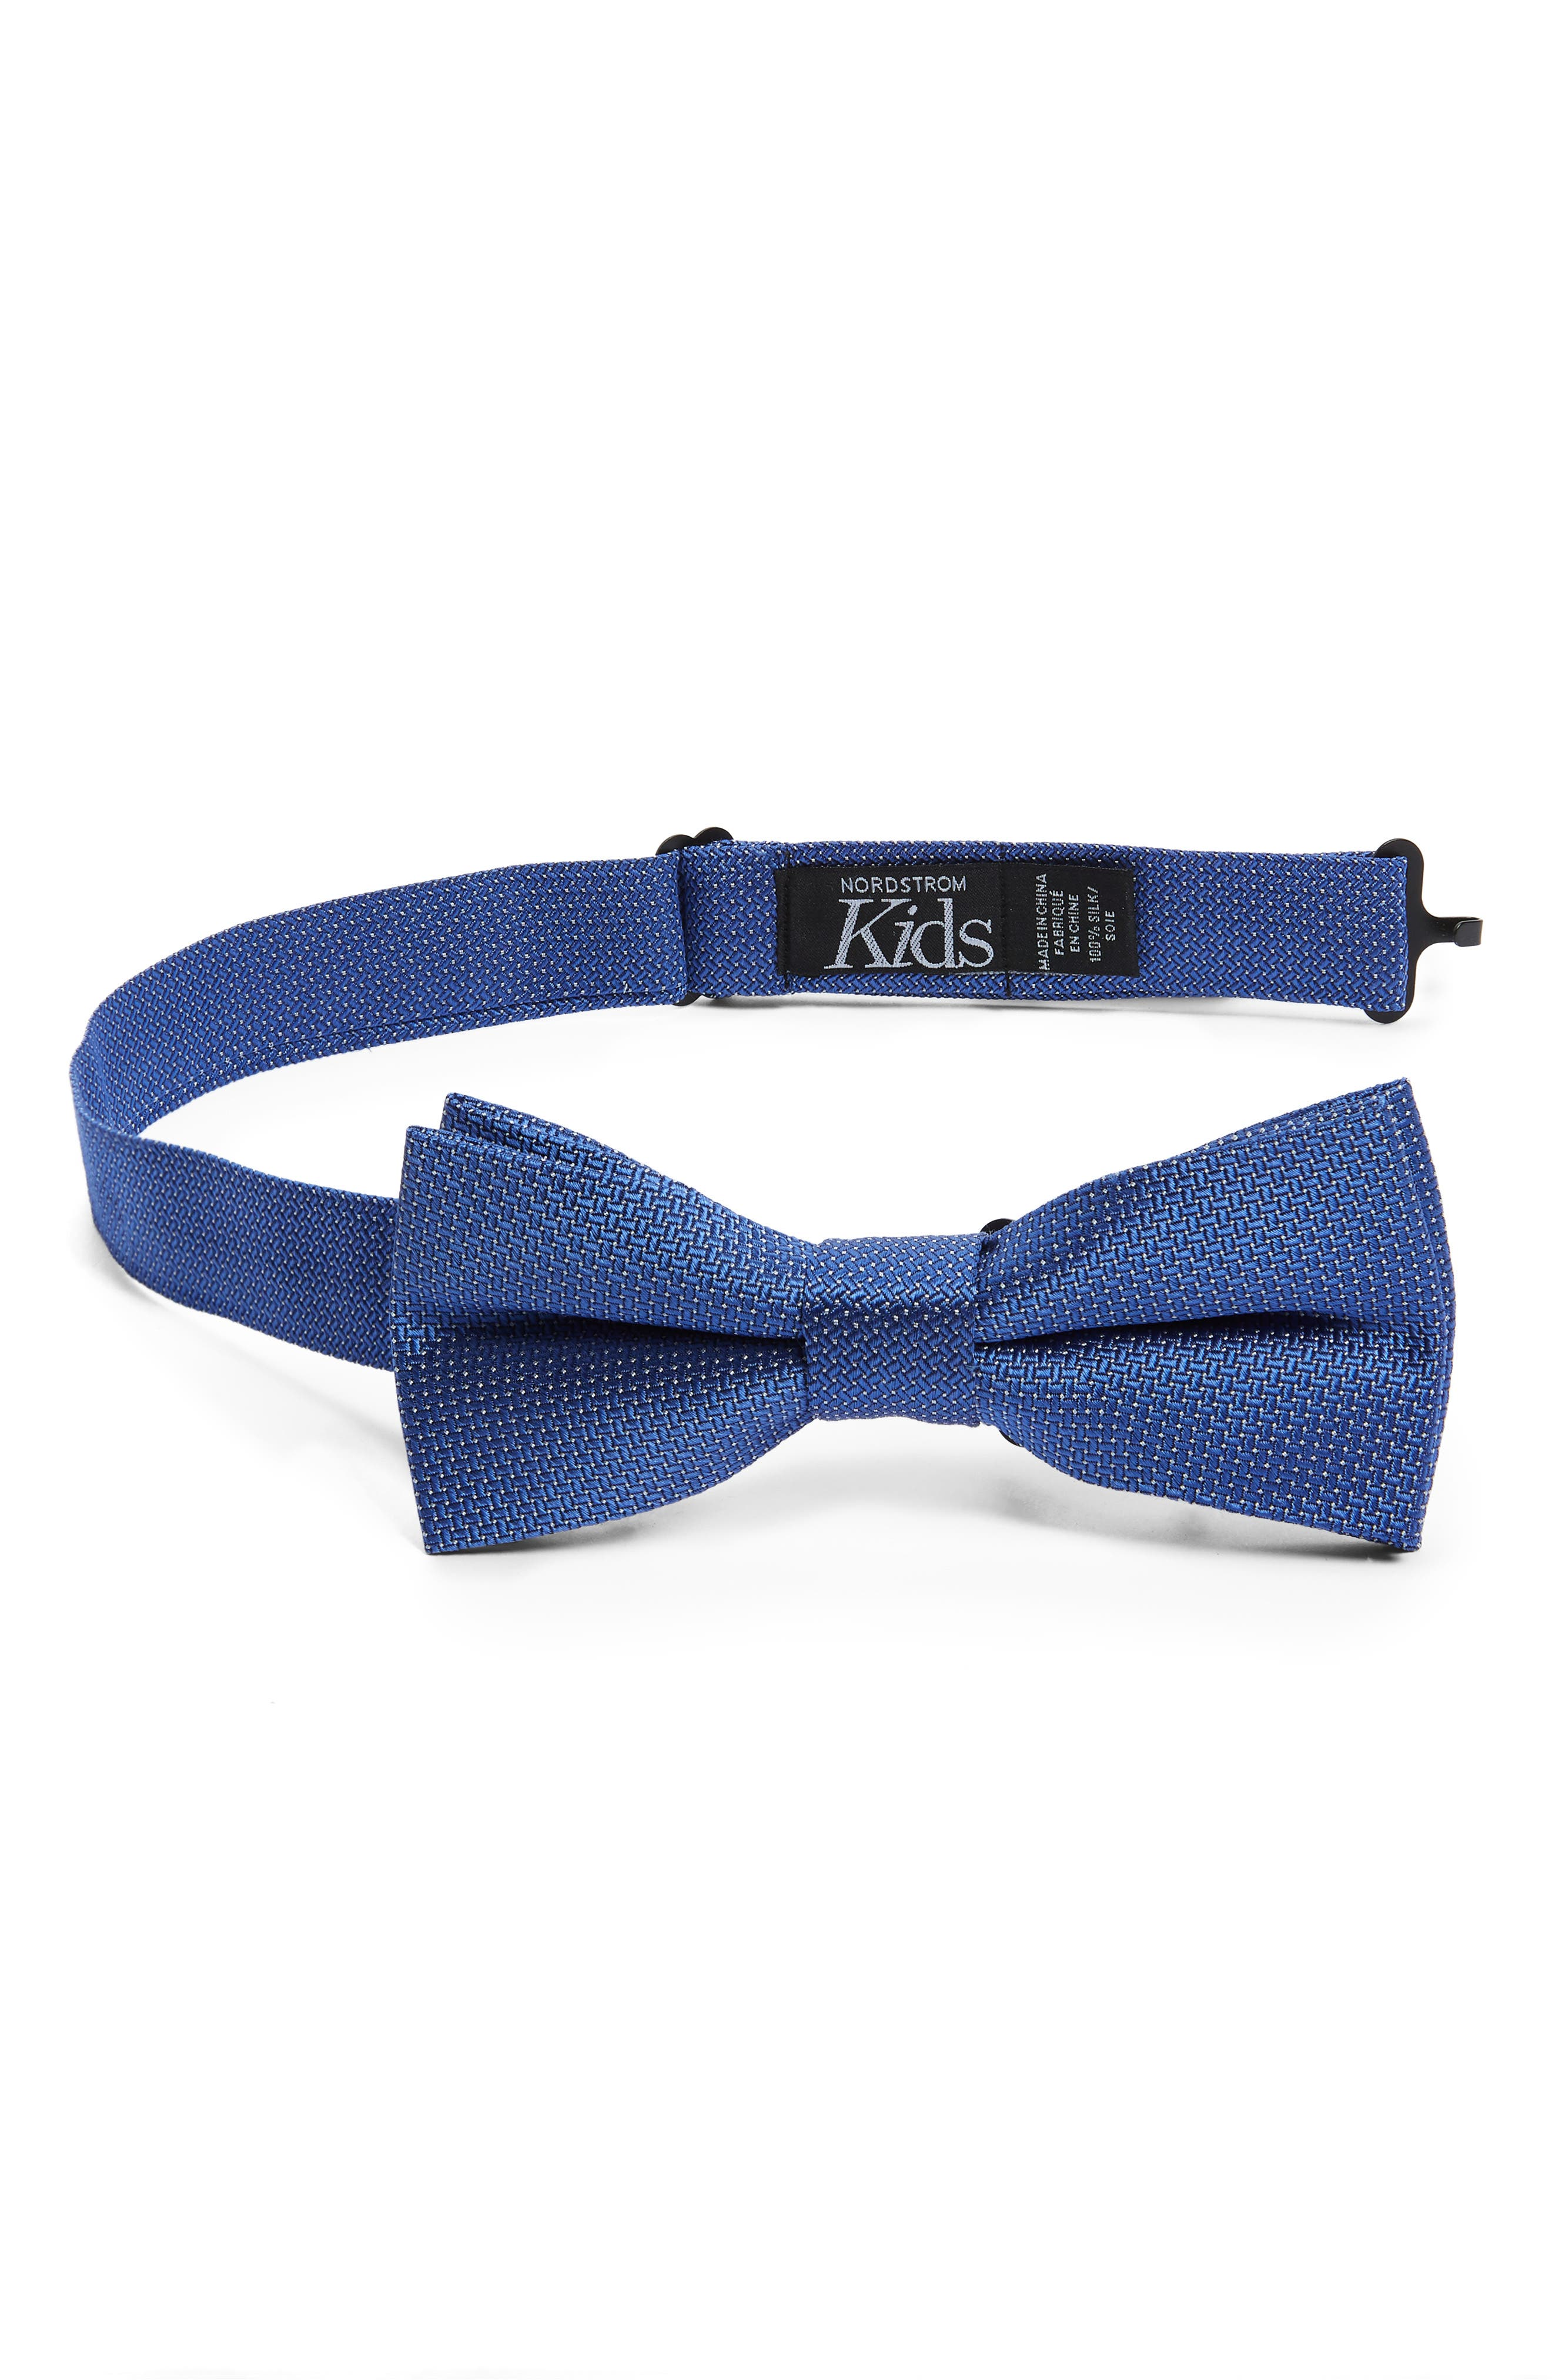 NORDSTROM,                             Theodore Silk Bow Tie,                             Main thumbnail 1, color,                             BLUE